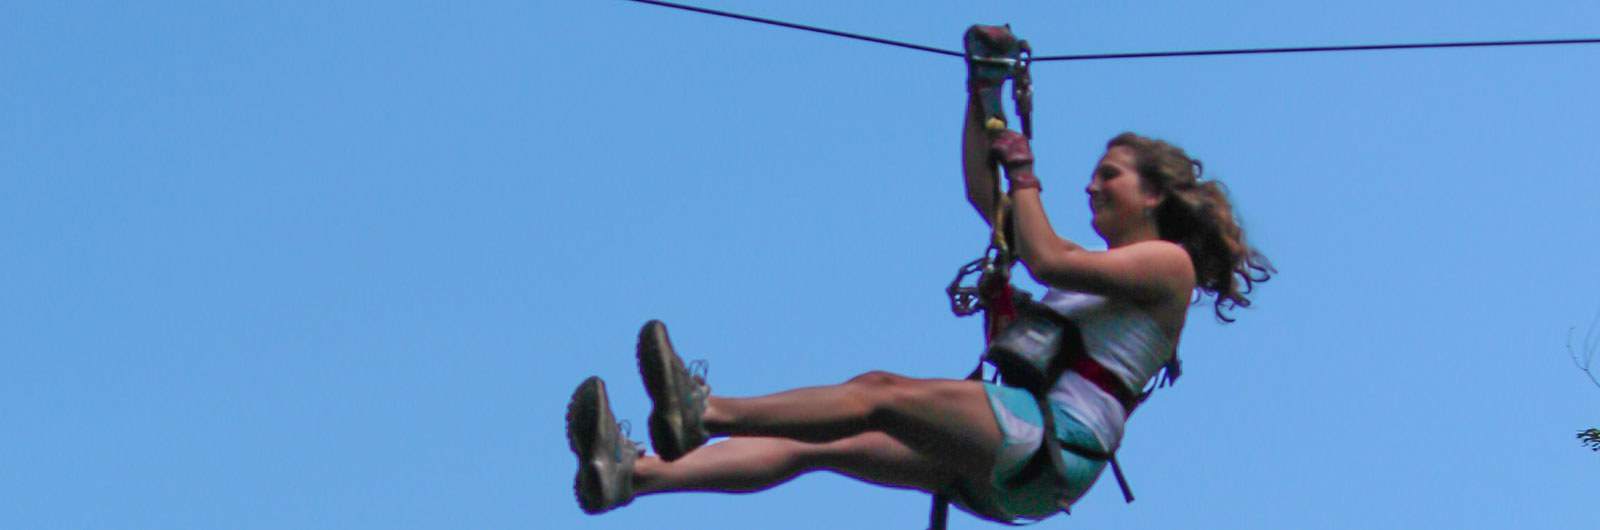 Woman zip lining at Sky High with blue sky background